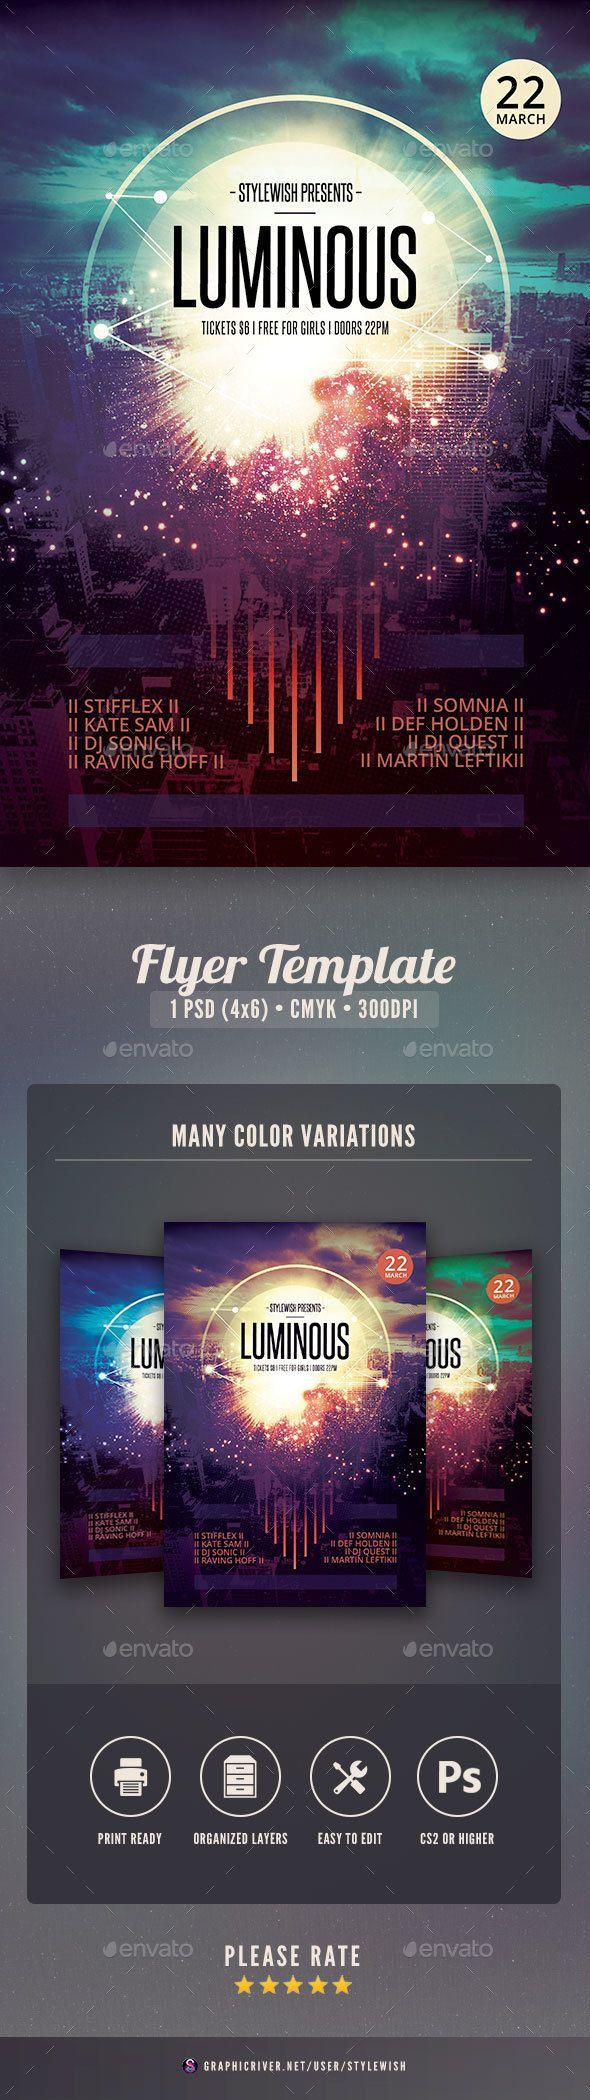 1 color poster design - Luminous Flyer Music Eventsflyer Templatebold Colorsposter Designsmusic